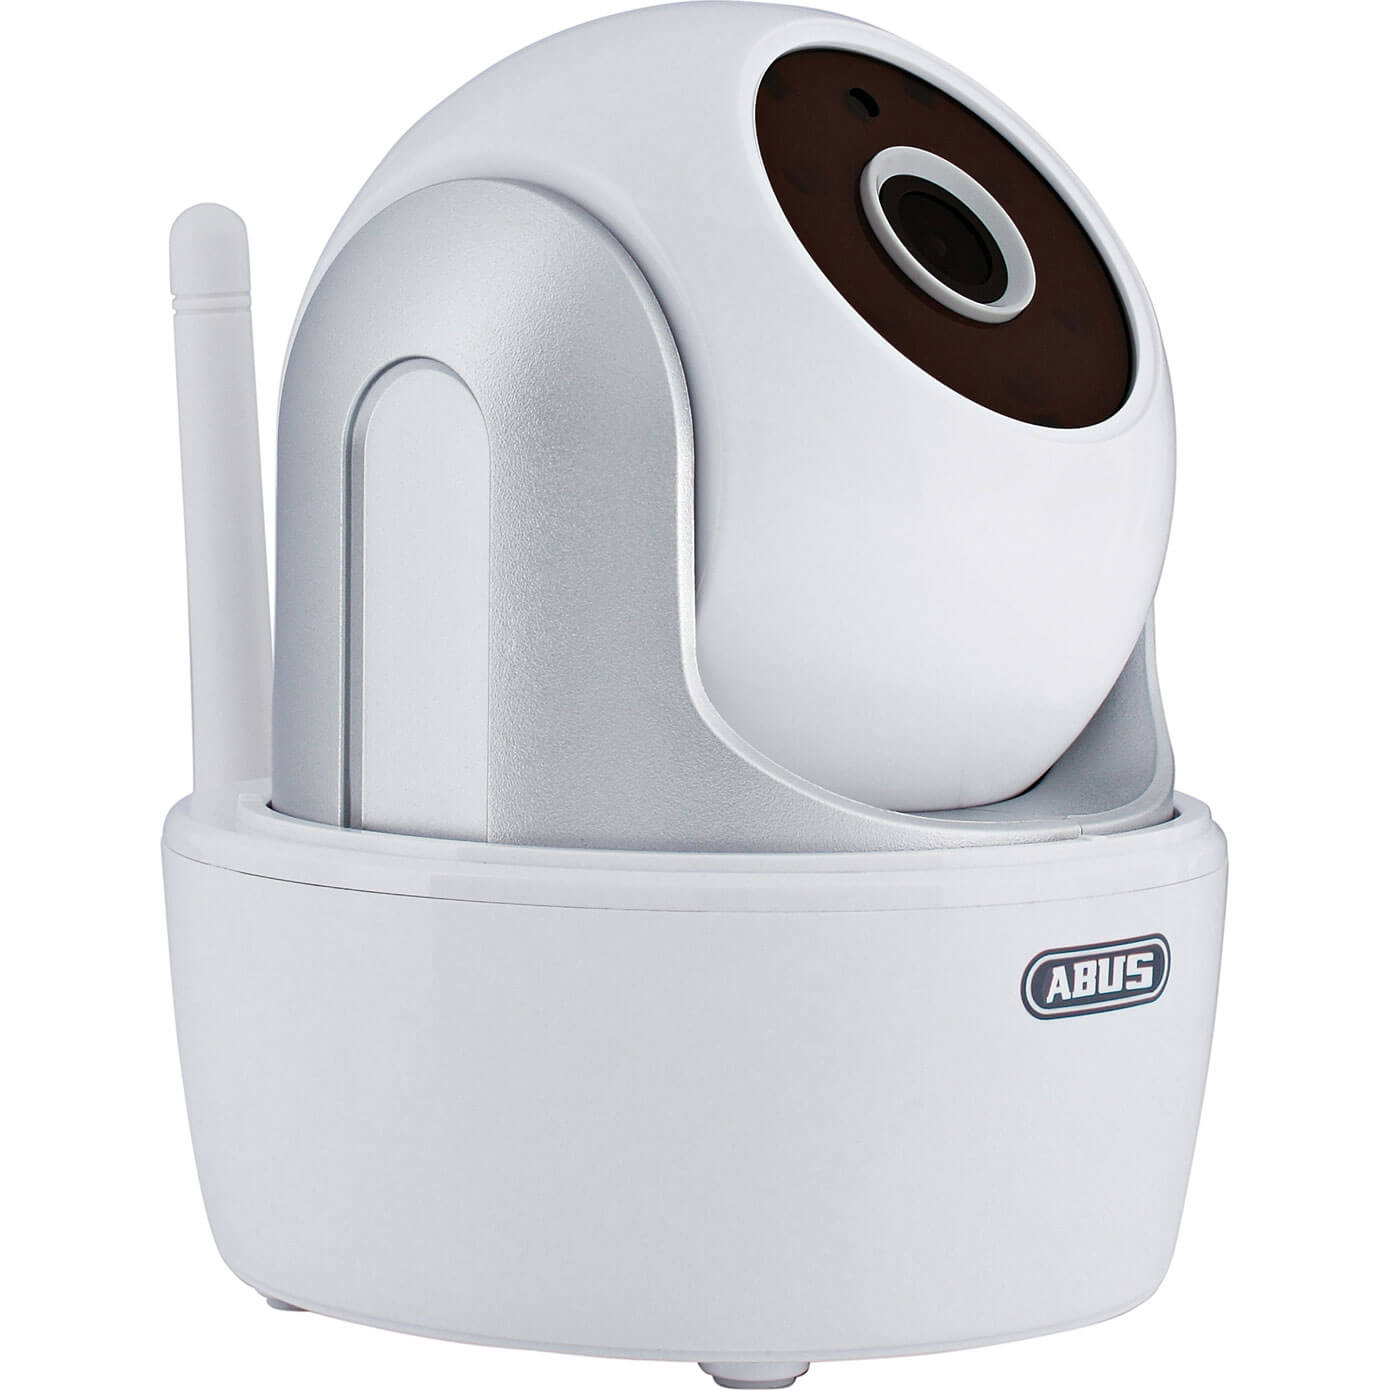 Abus Security WLAN Indoor Camera with Pan / Tilt Function 720p